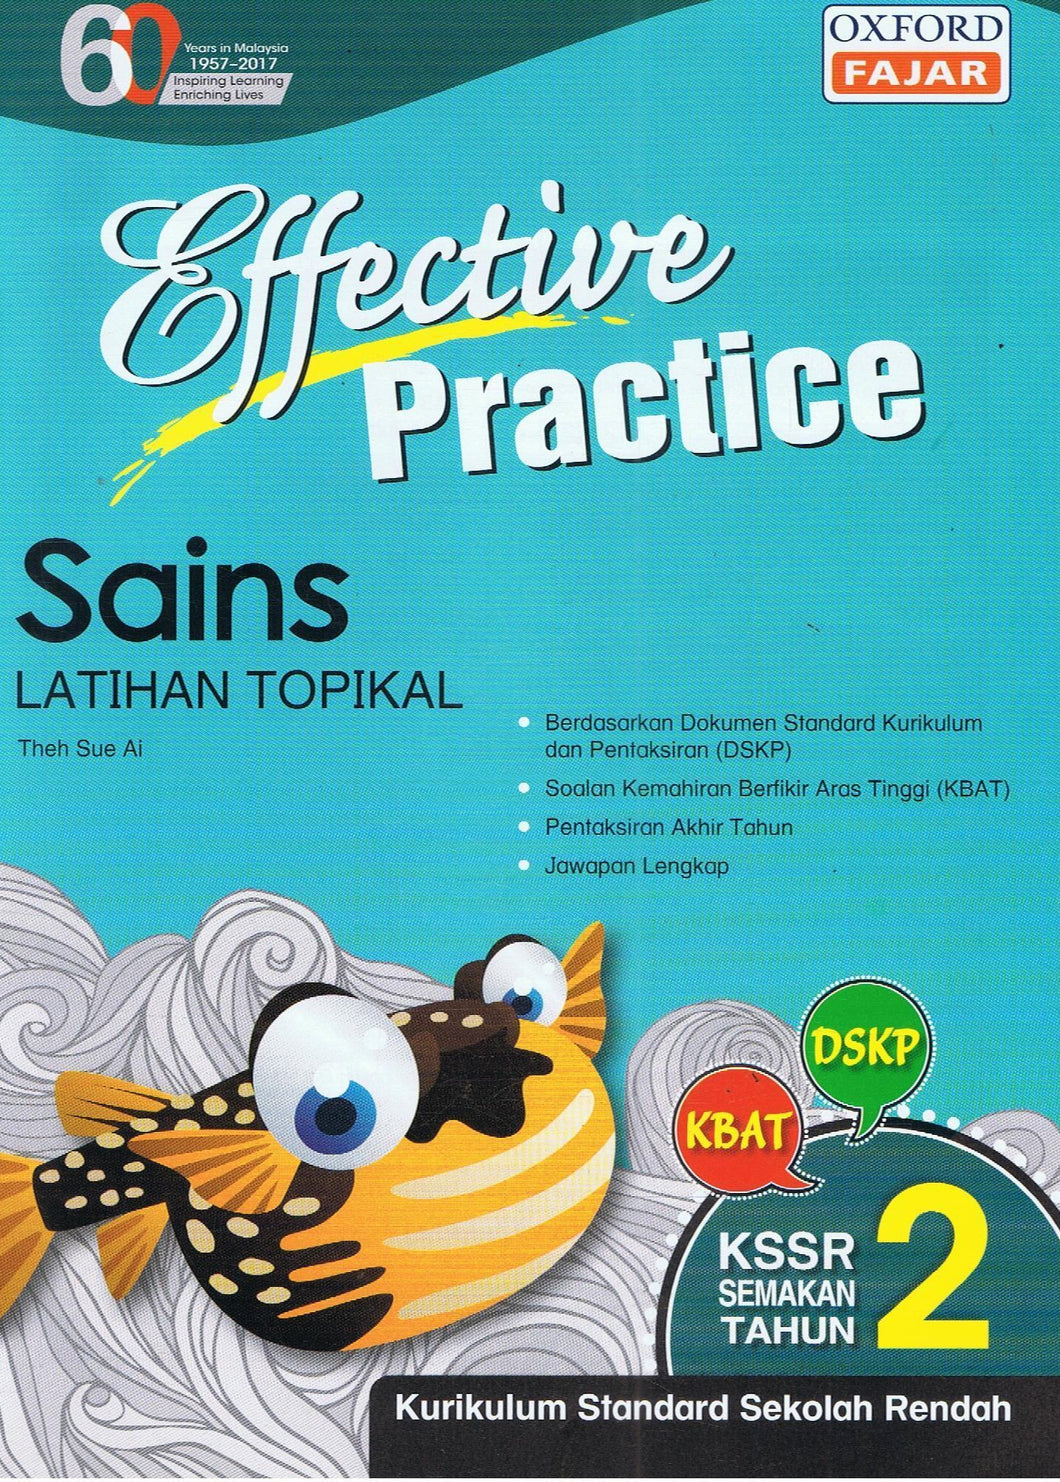 Oxford Fajar-Effective Practice: Sains Latihan Topikal Tahun 2-9789834722210-BukuDBP.com